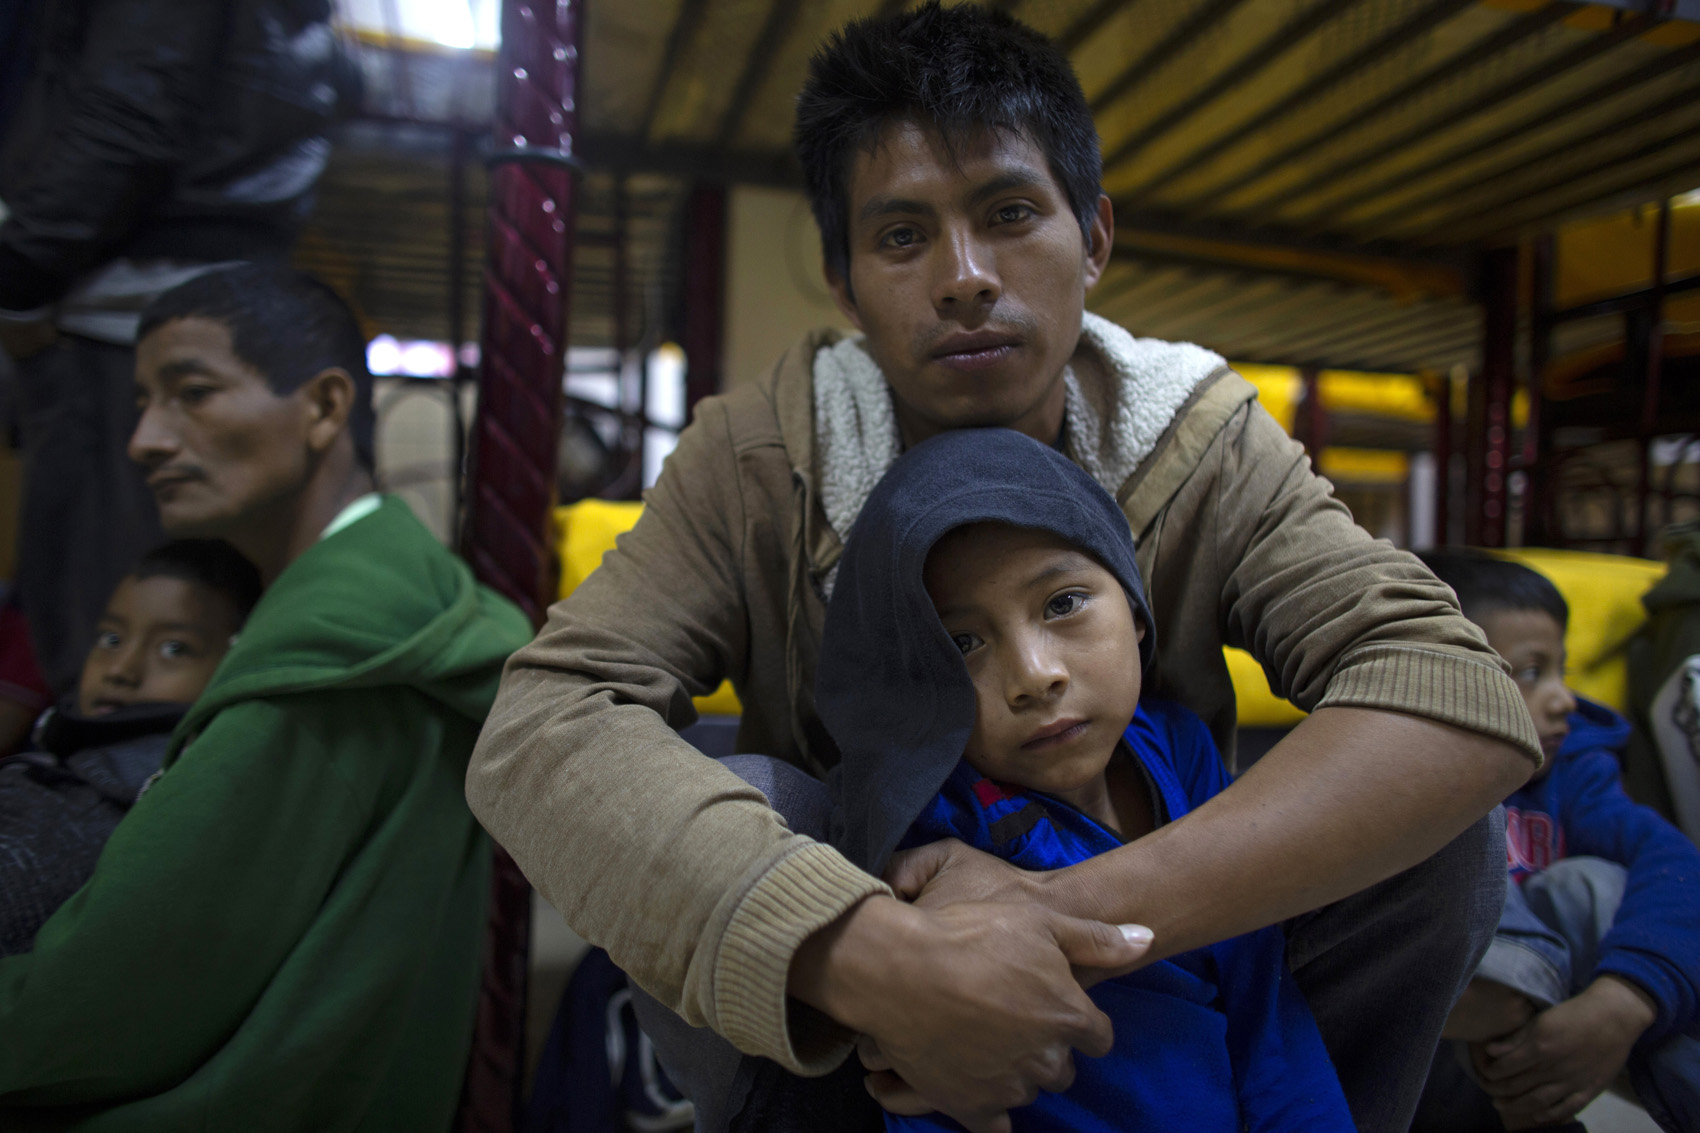 Abraham, 7, sits on the floor with his father, Miguel Martin, 27, at the San Juan Bosco migrant shelter, in Nogales, Mexico. Miguel left behind his wife and another son in hopes of getting enough work to buy some land in their hometown since they are now practically homeless in Guatemala. (Dario Lopez-Mills/AP)